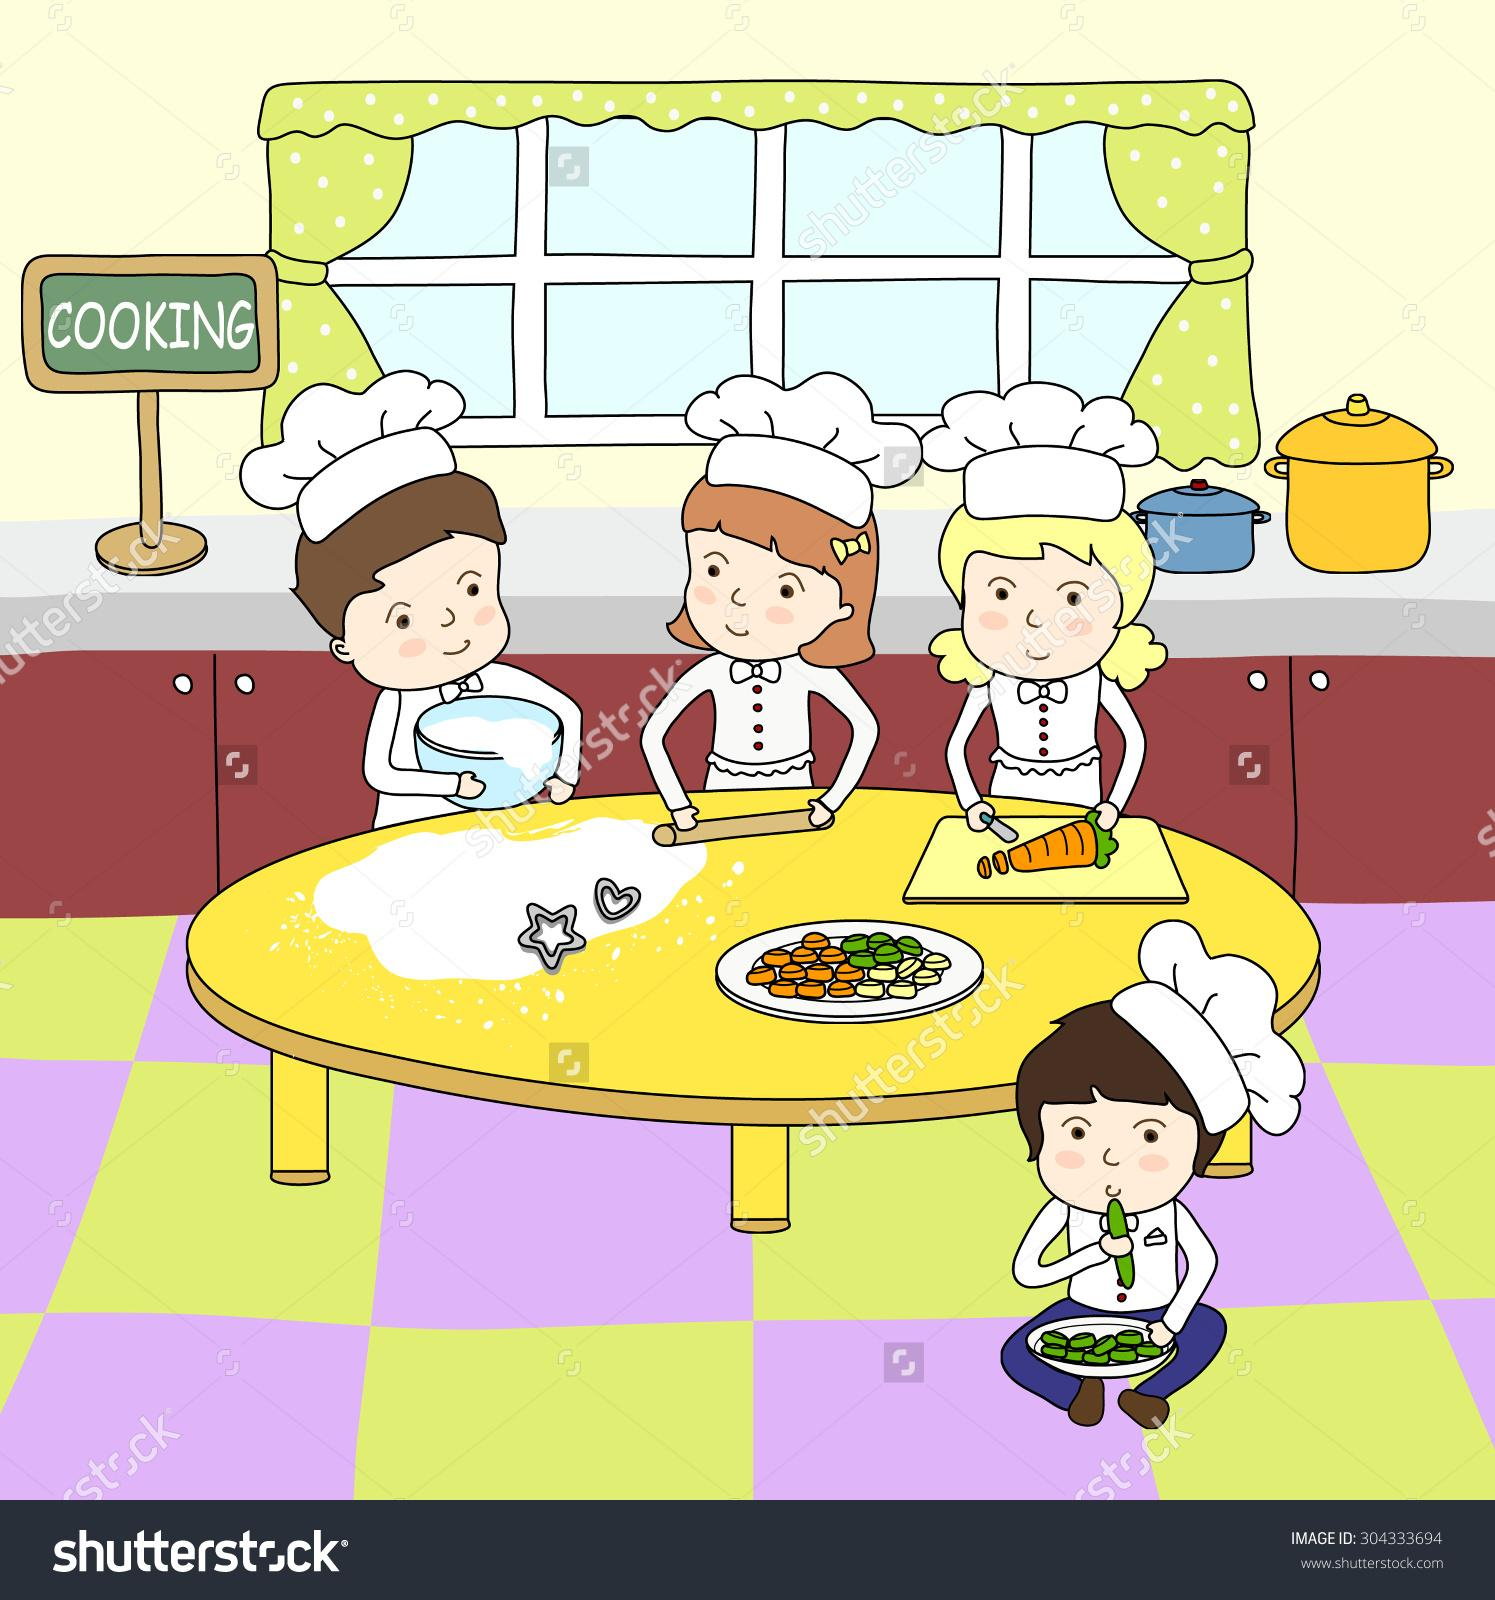 Free class cliparts download. Cooking clipart cooking lesson